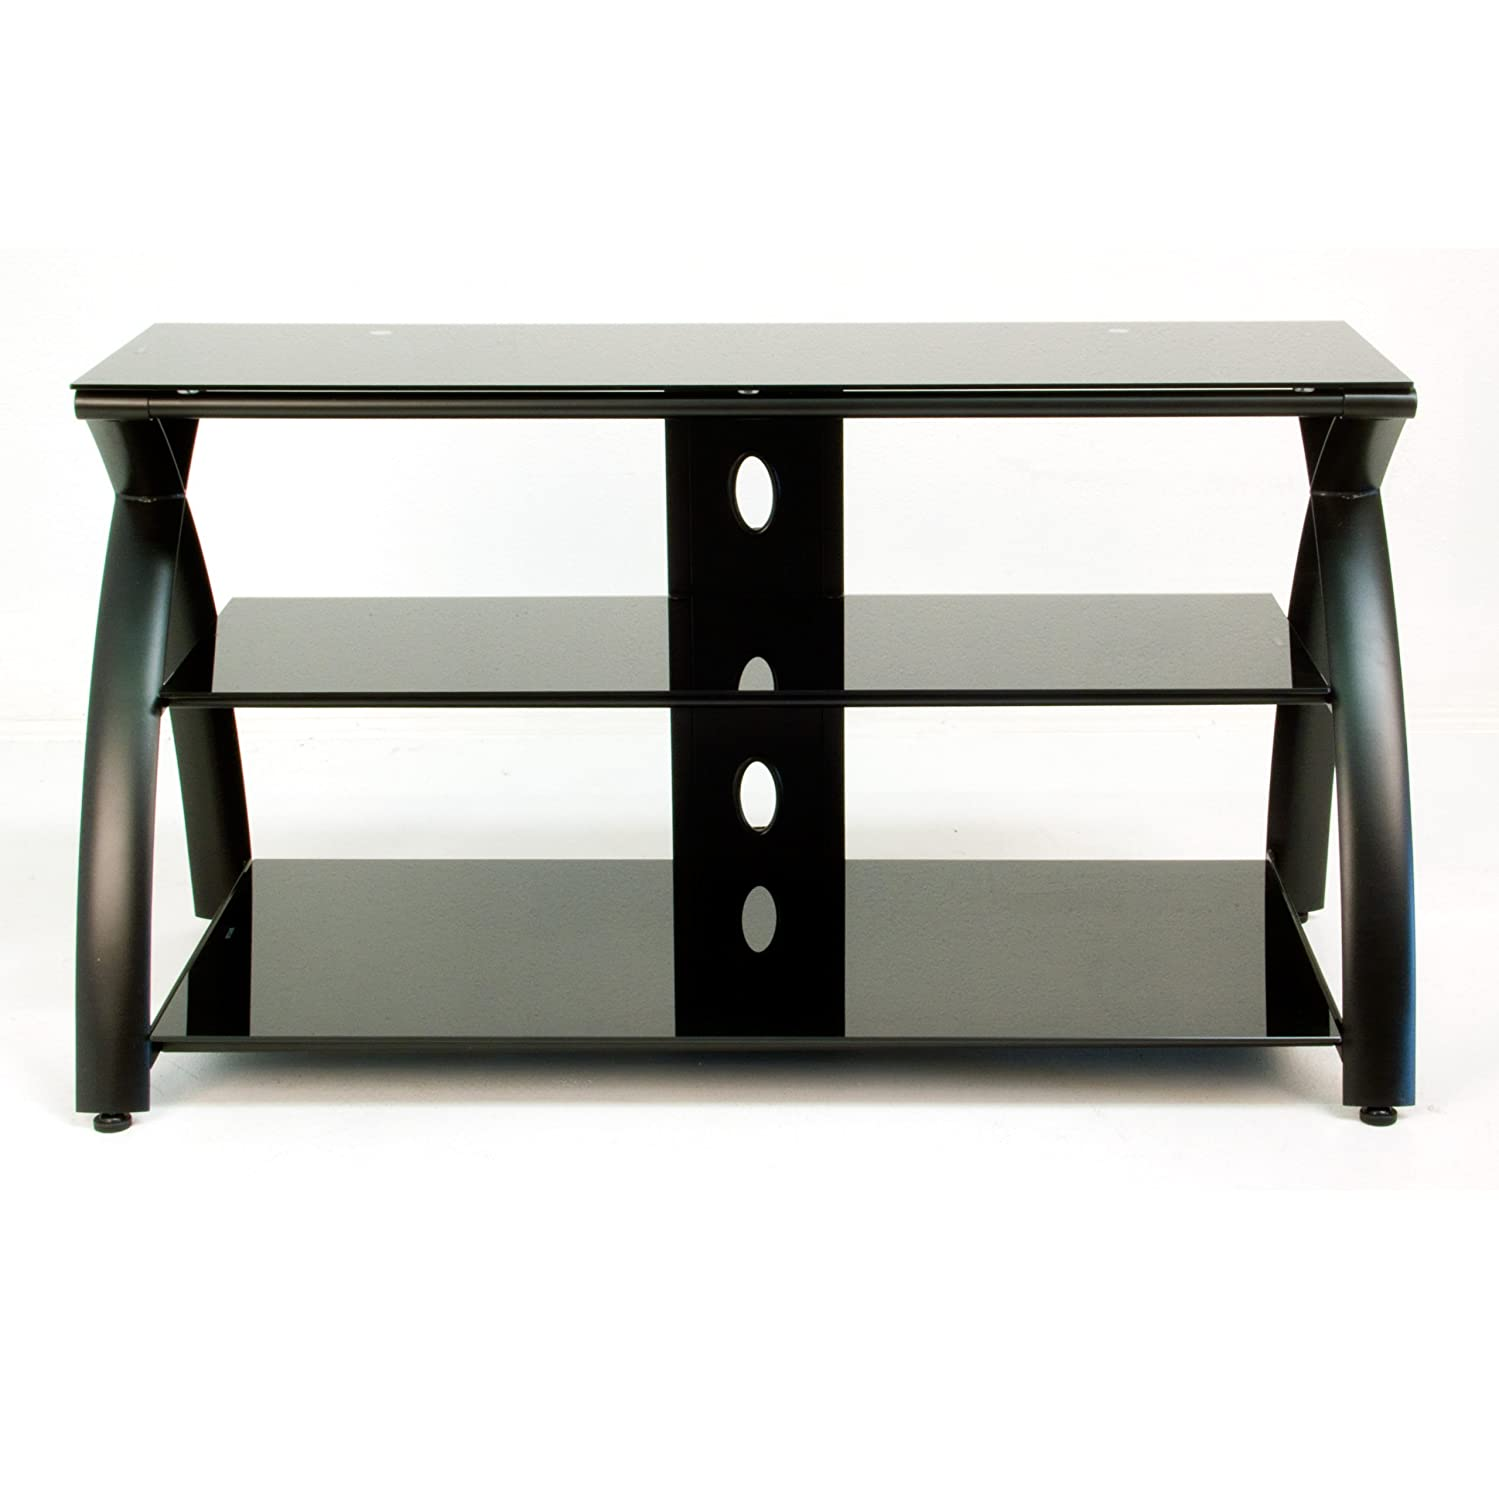 Calico Designs Futura TV Stand in Black with Black Glass 50601